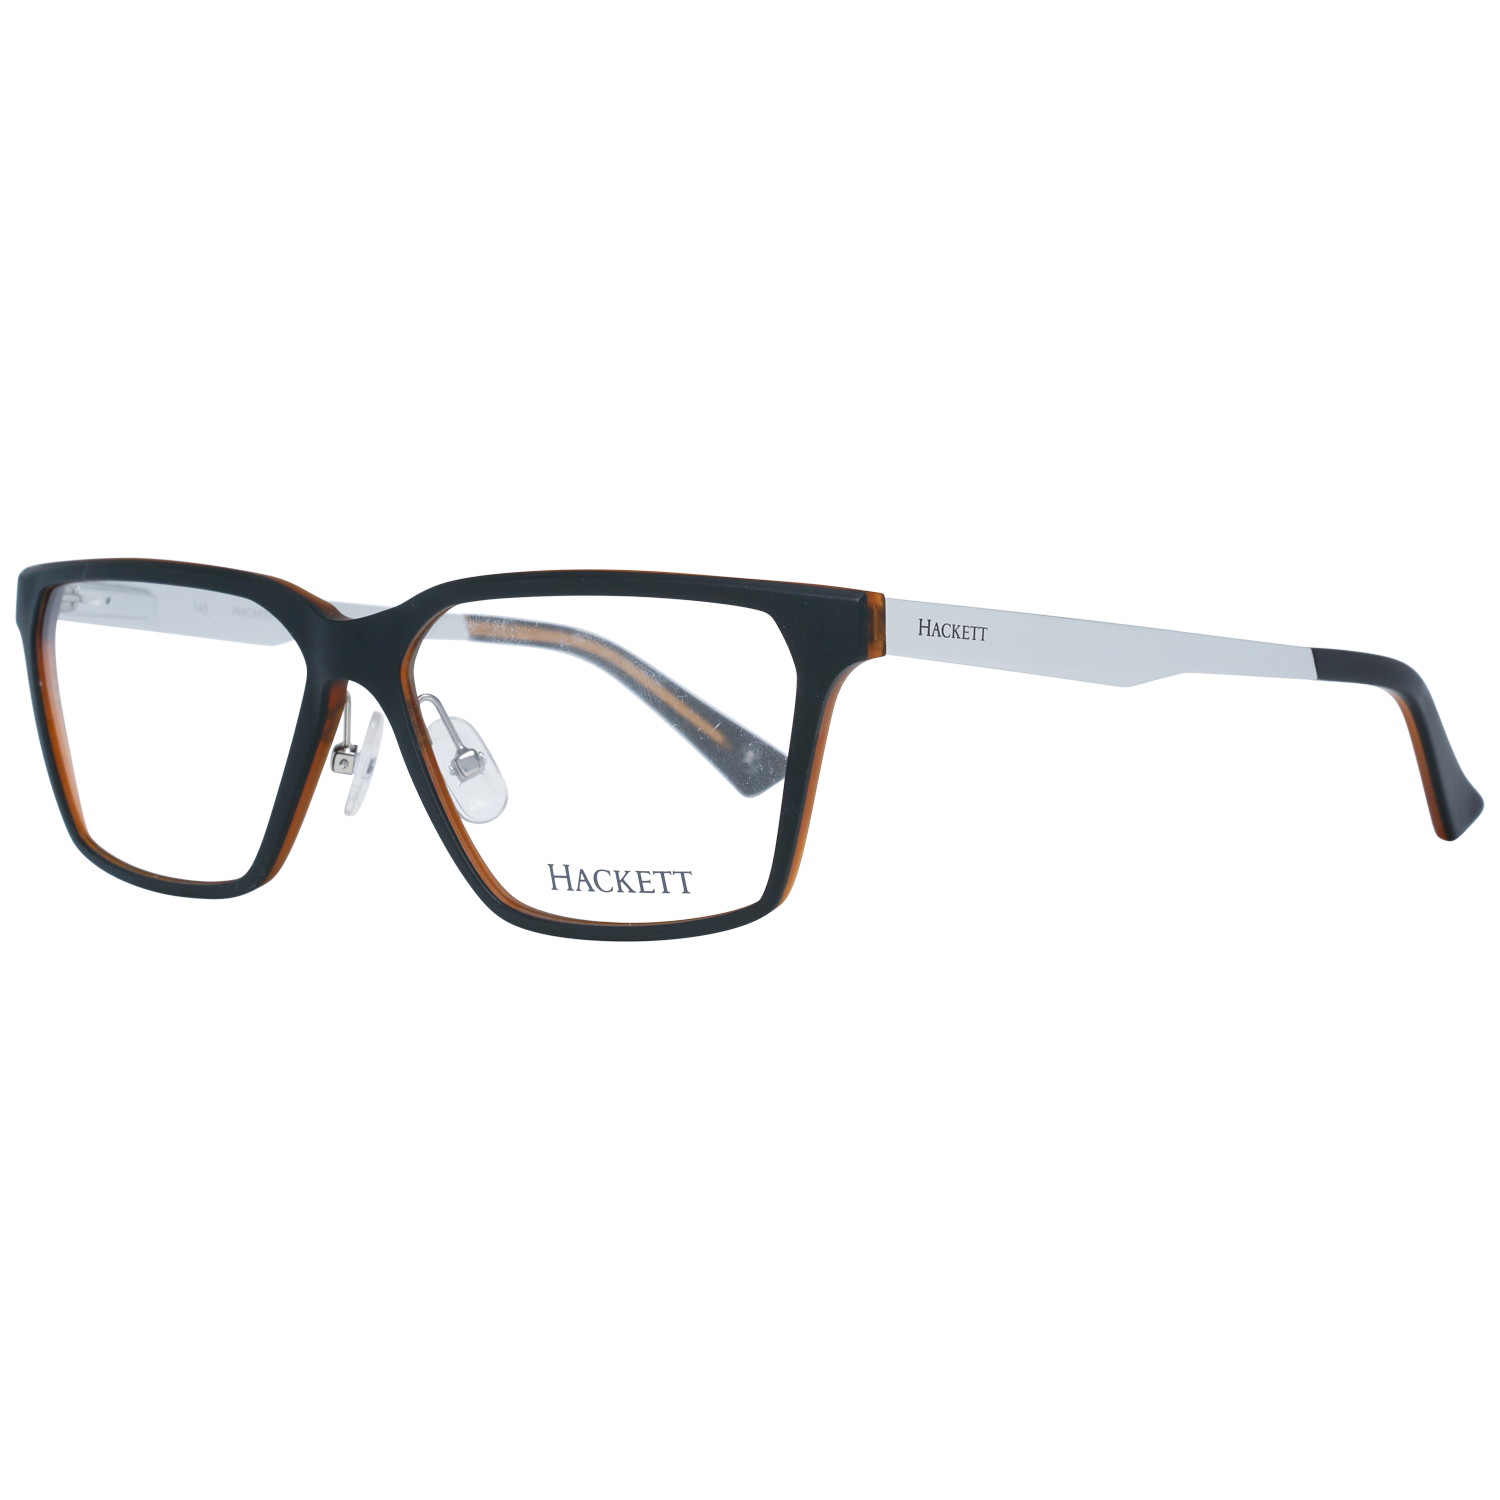 Hackett Optical Frame HEK1156 077 Black